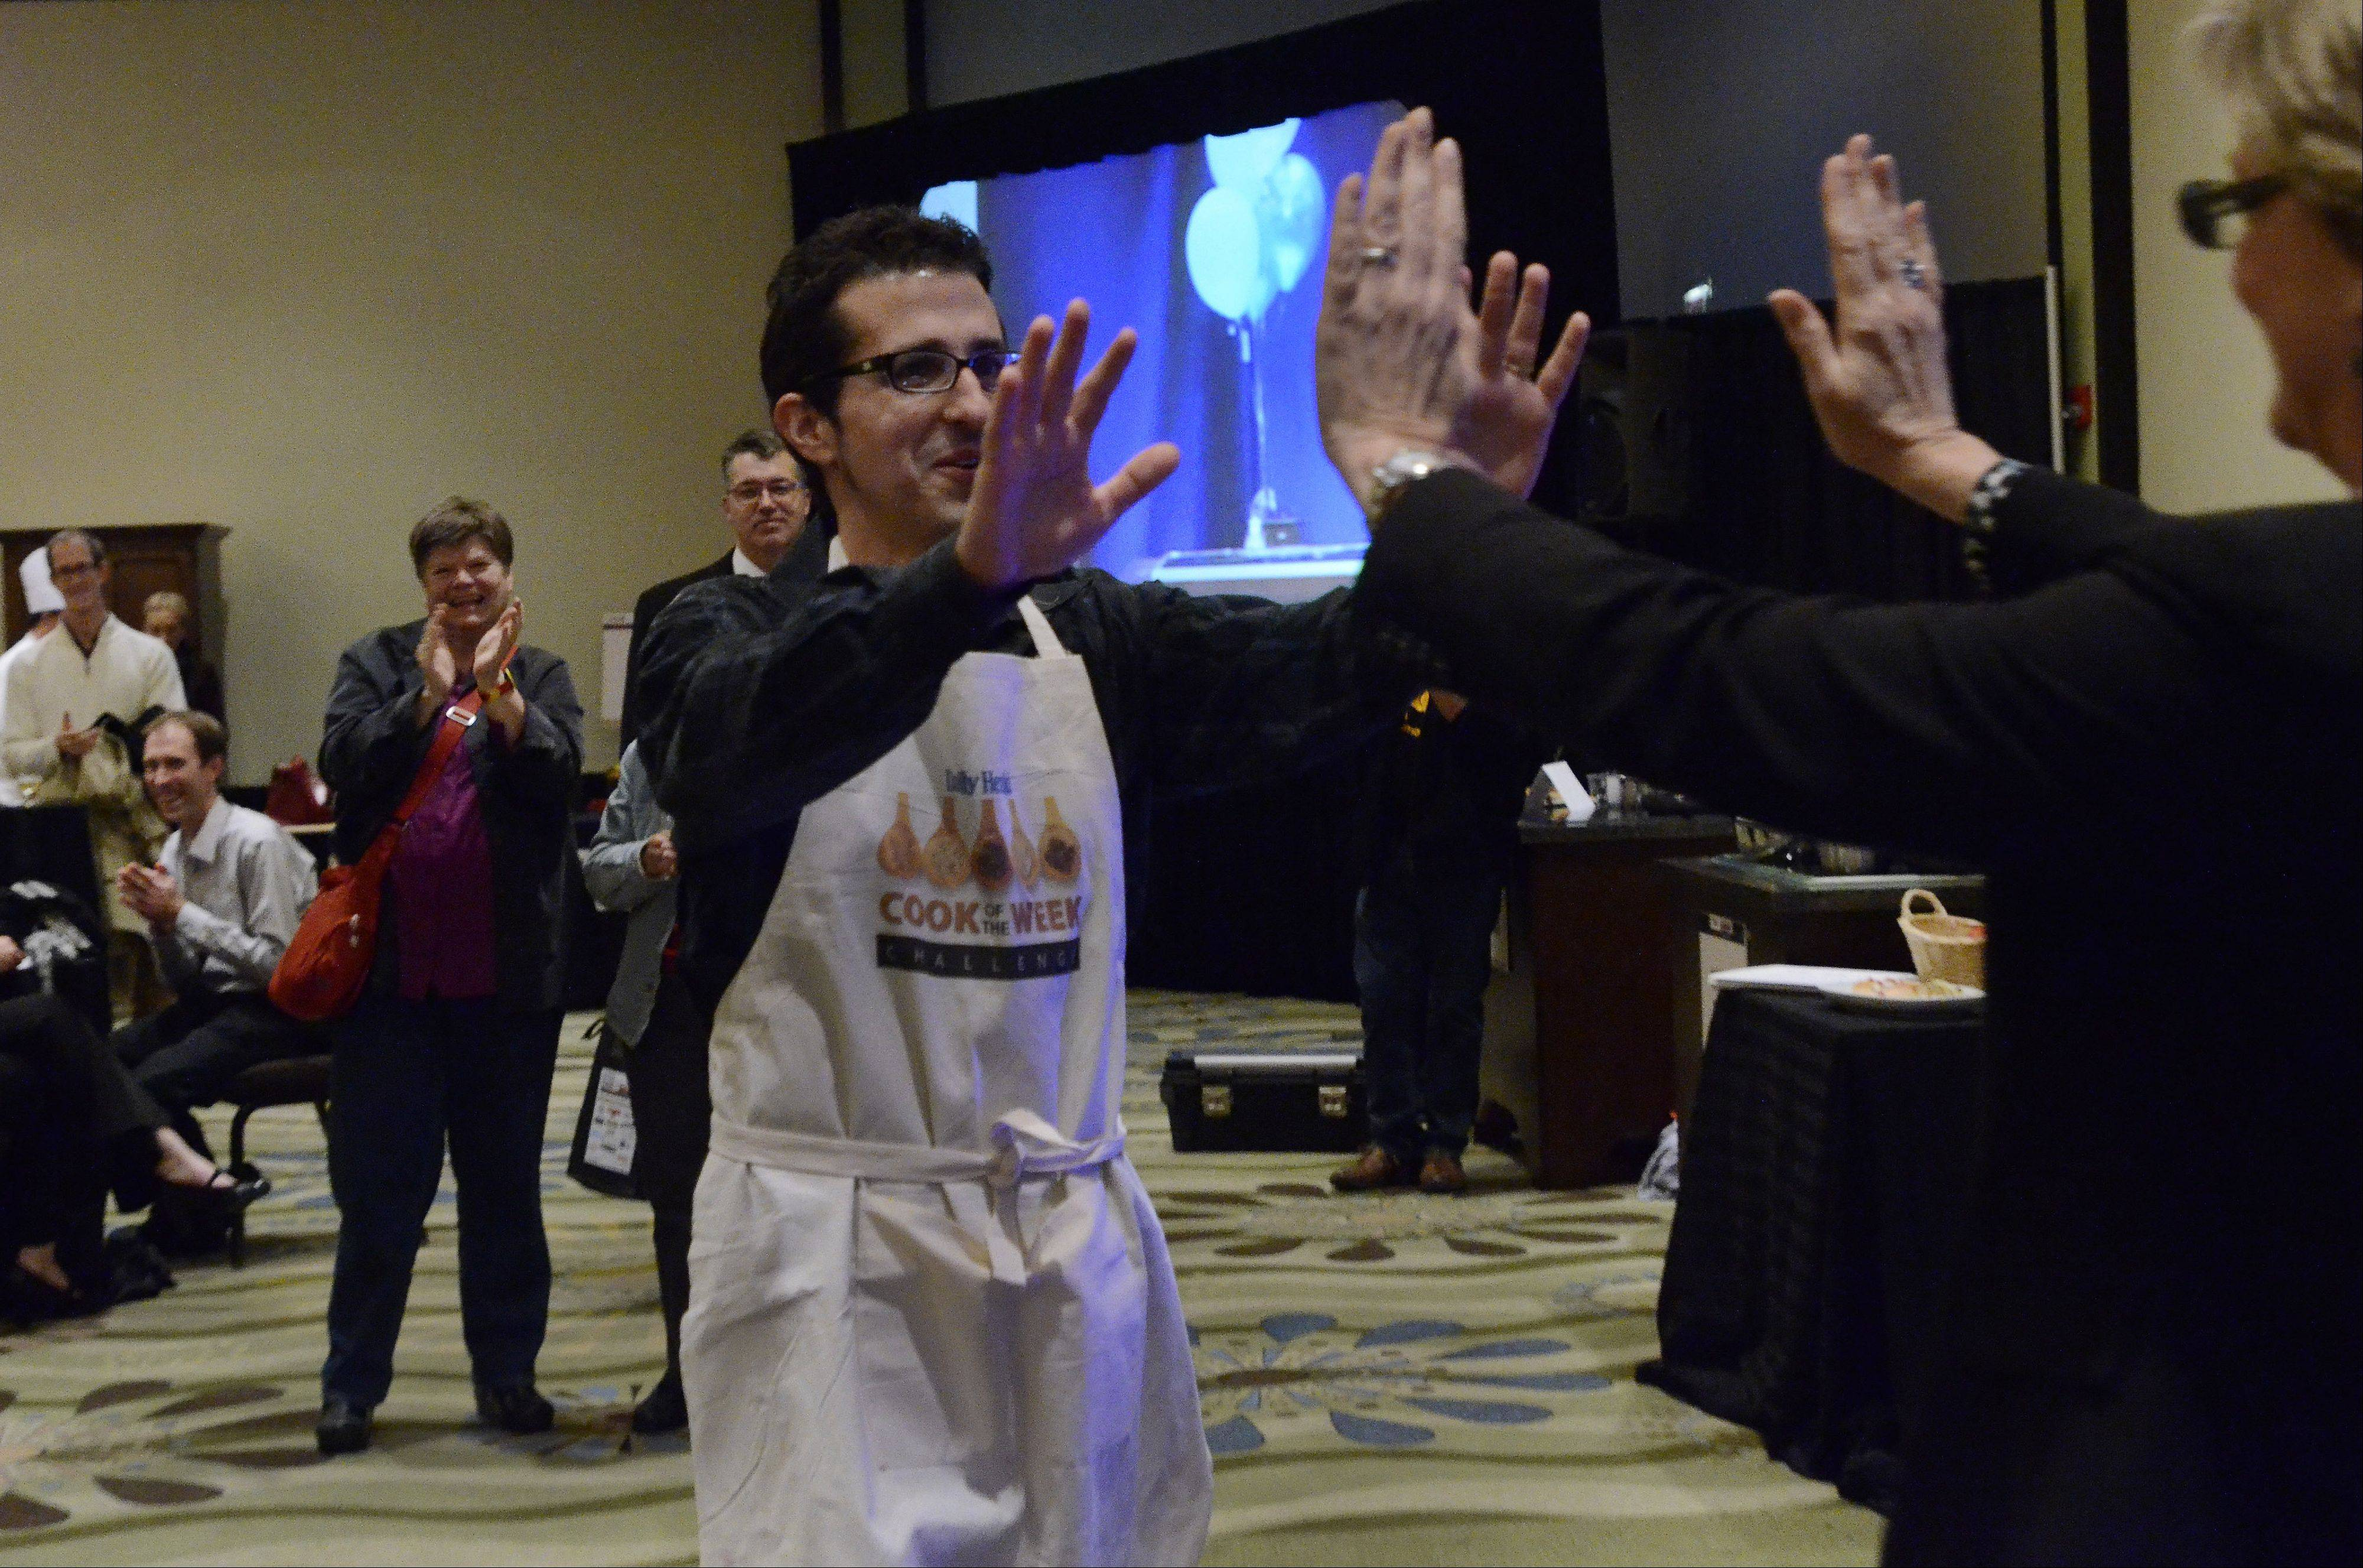 Michael Pennisi of Carpentersville is congratulated by Eileen Brown, Daily Herald Assistant Vice President/Director of Strategic Marketing and Innovation, after winning the Cook of the Week Challenge Cookoff.